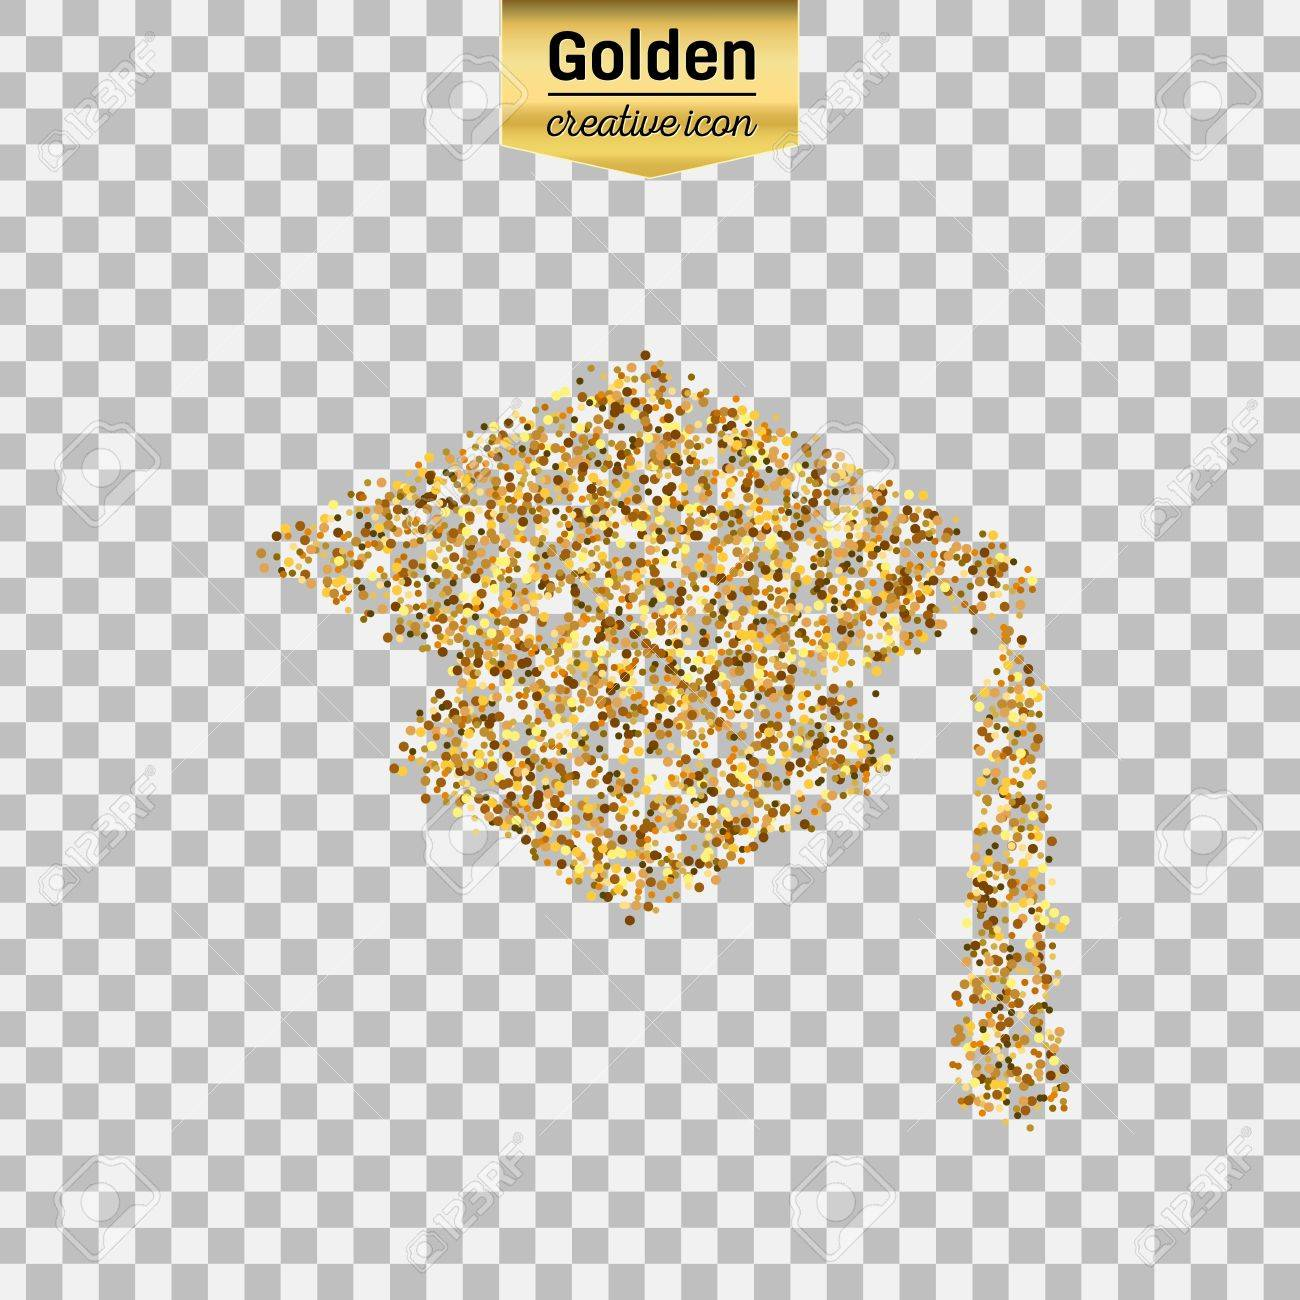 Gold glitter vector icon of square academic cap isolated on background.